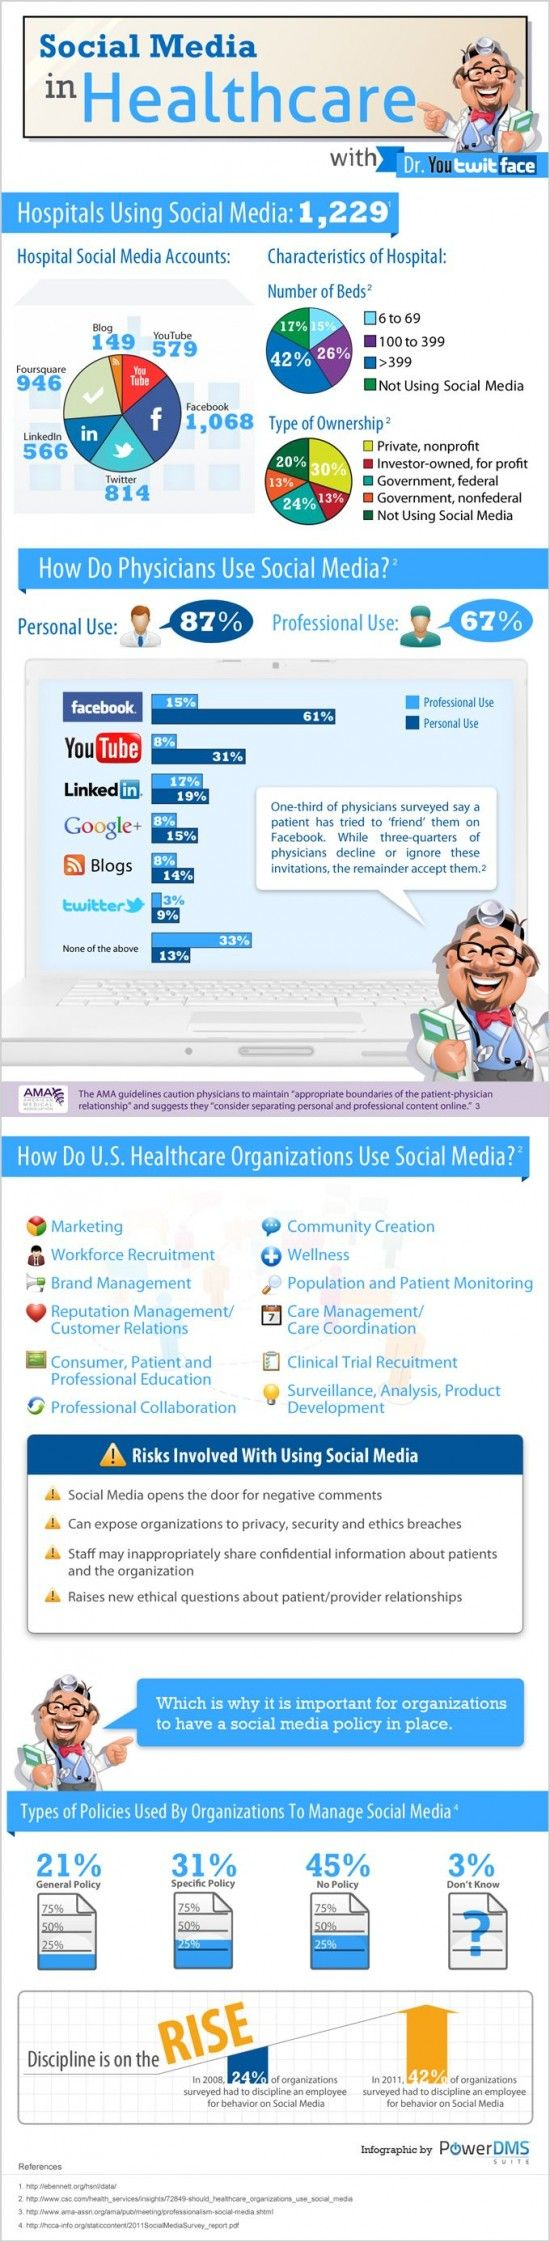 Social Media use in Healthcare - Infographic with great stats!